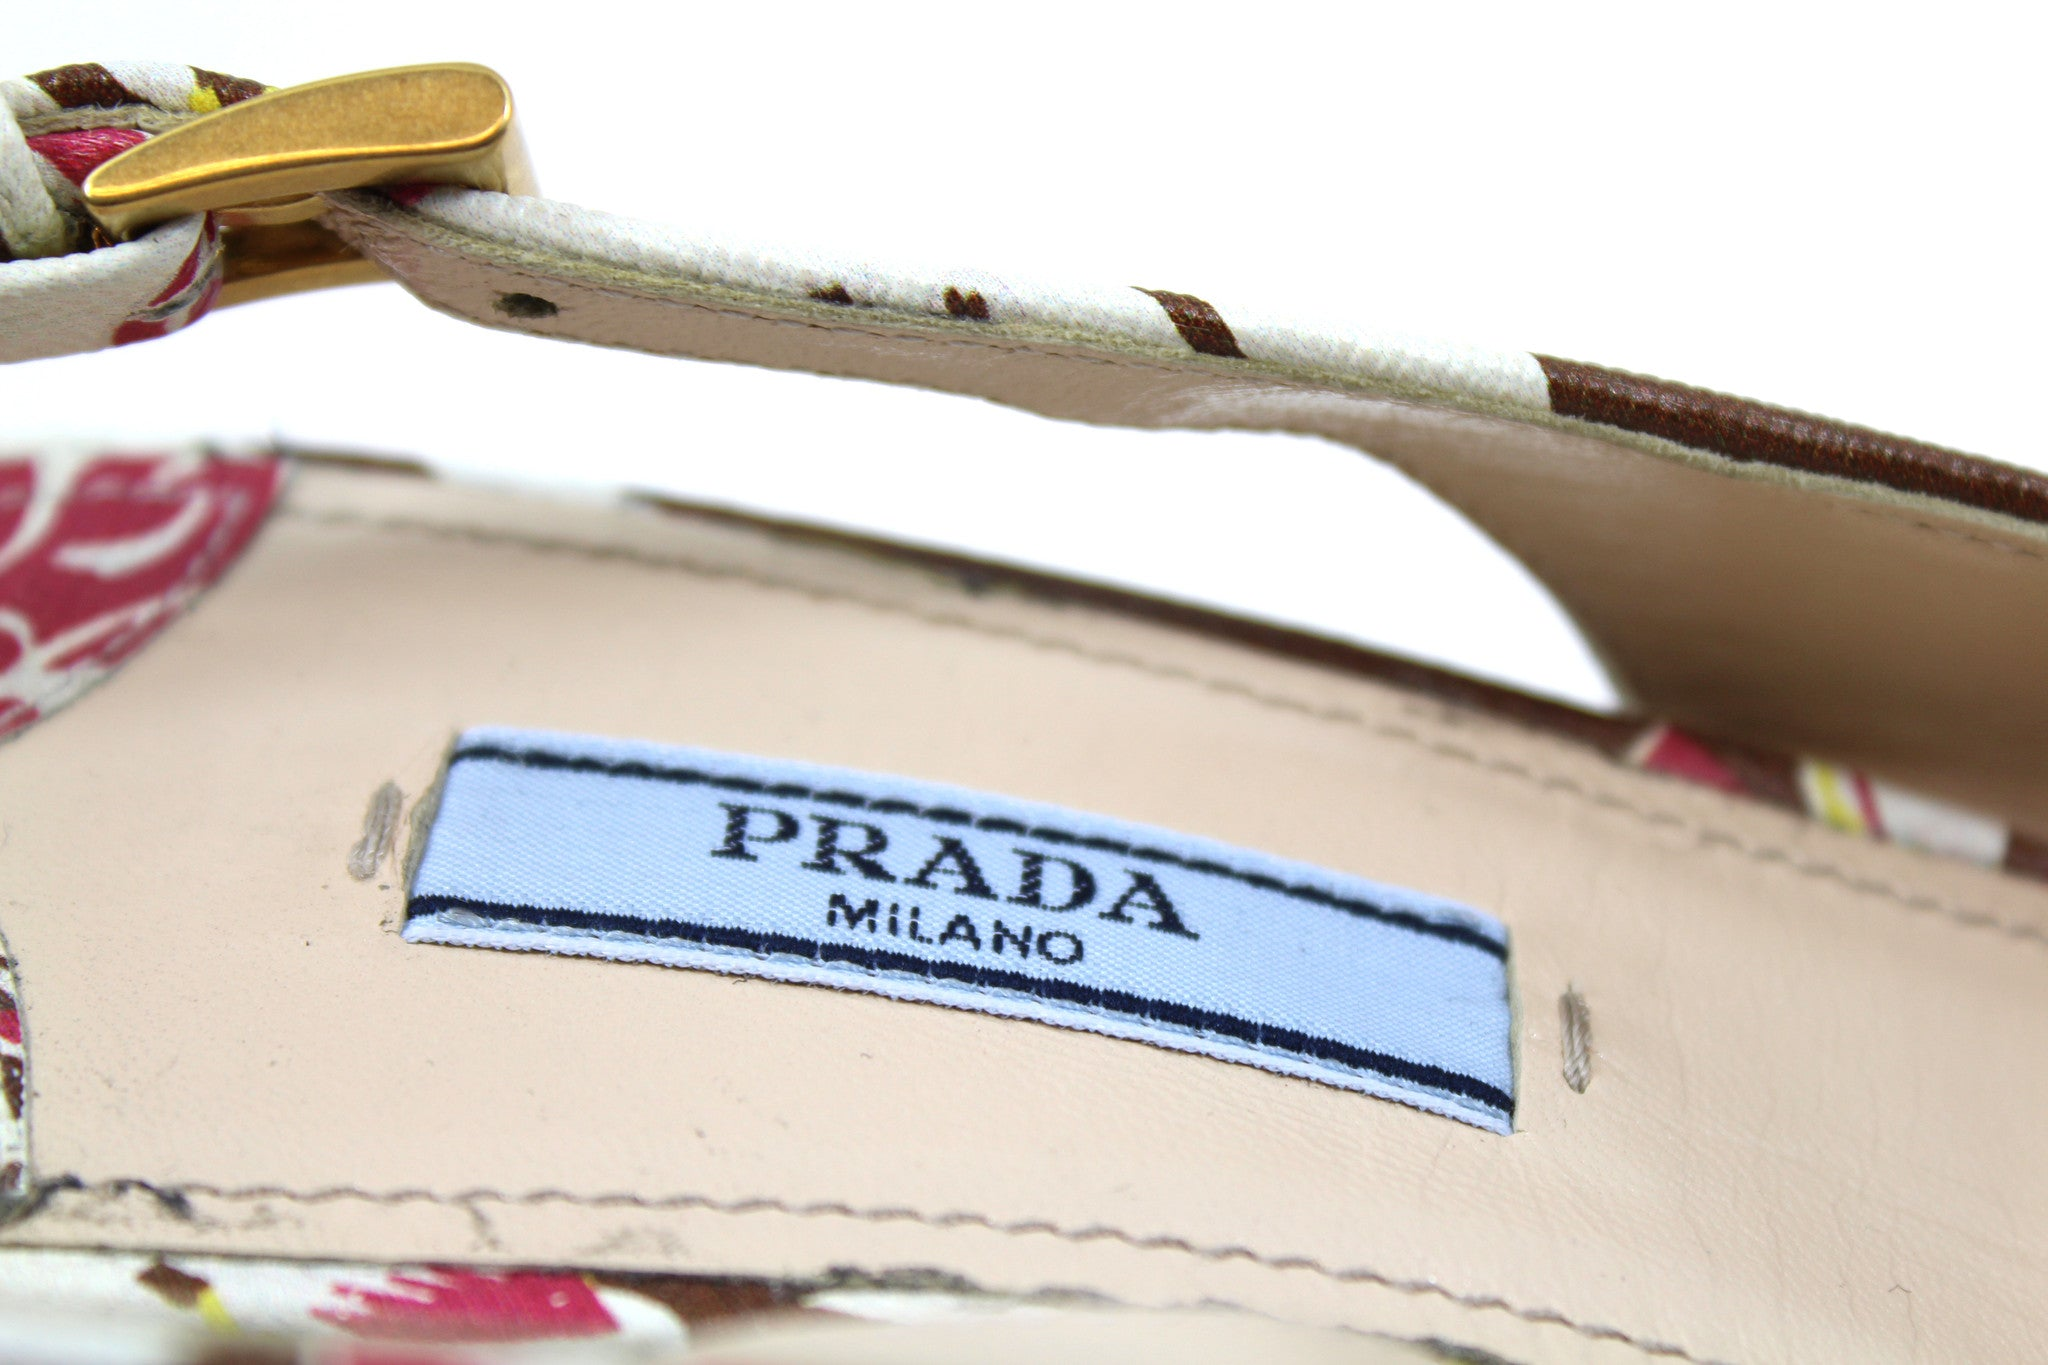 Prada Pointed-Toe Cream Leather Floral Sandal (Size 39)